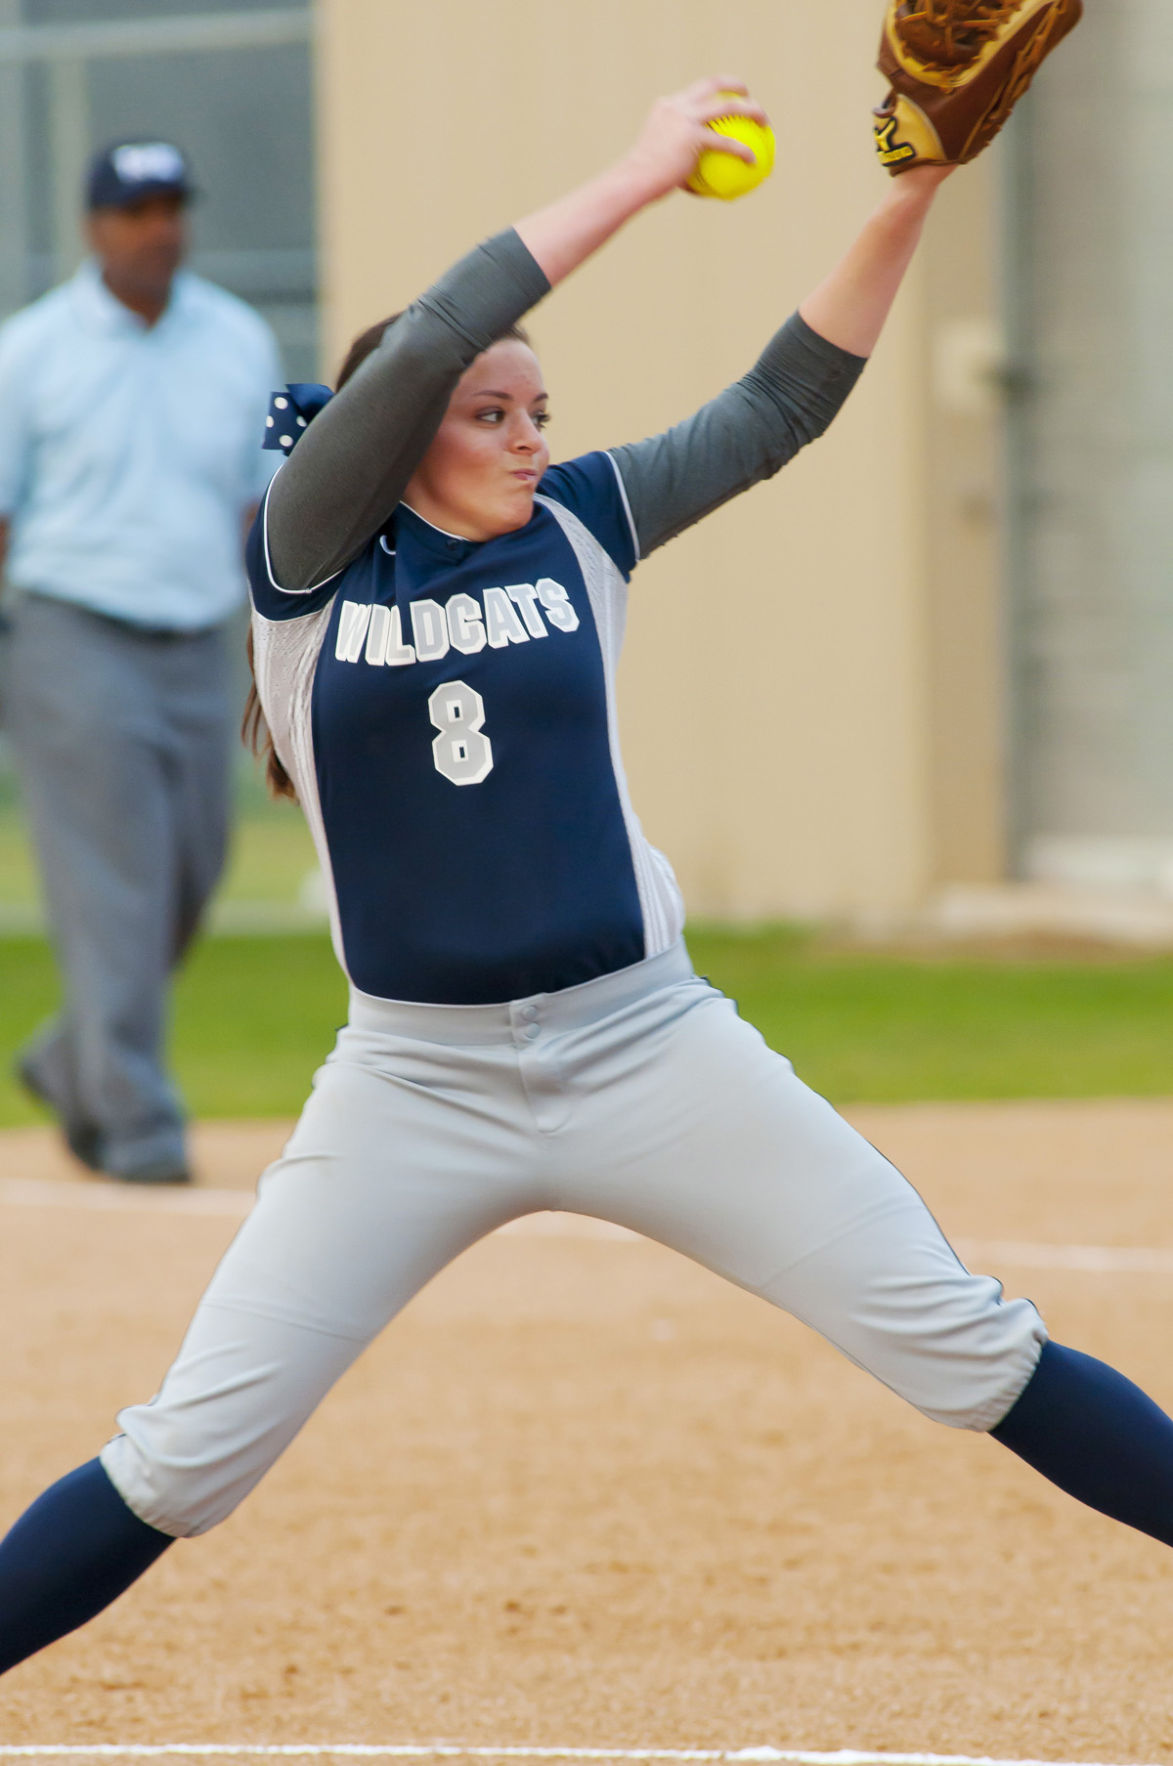 Trystan Melancon pitches no hitter for UH softball seattlepi